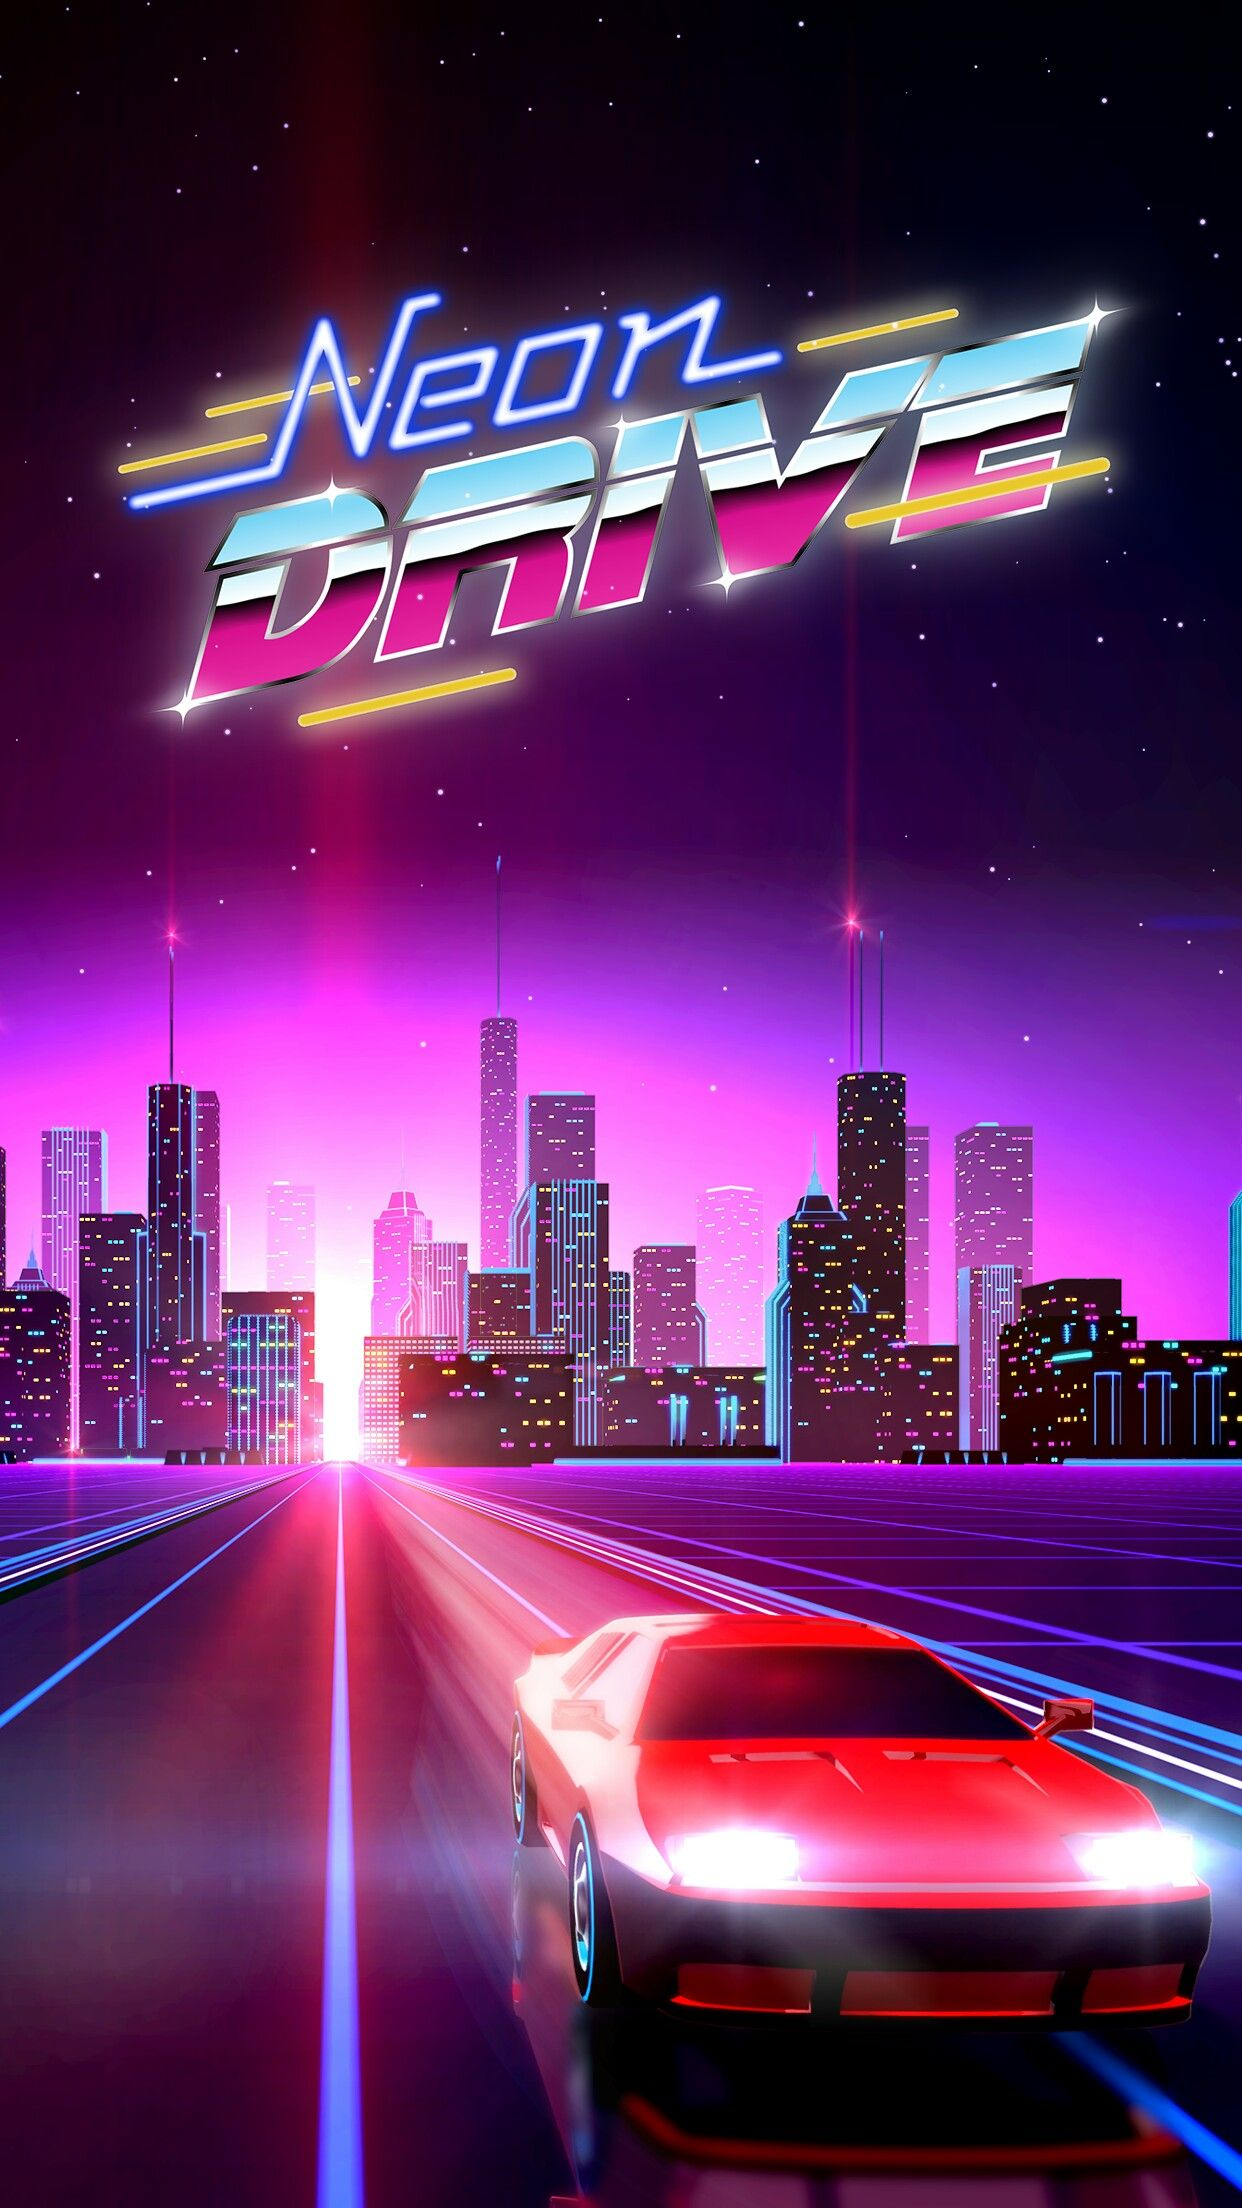 Pin by Chris on I love the 80s | Neon wallpaper, Vaporwave ...